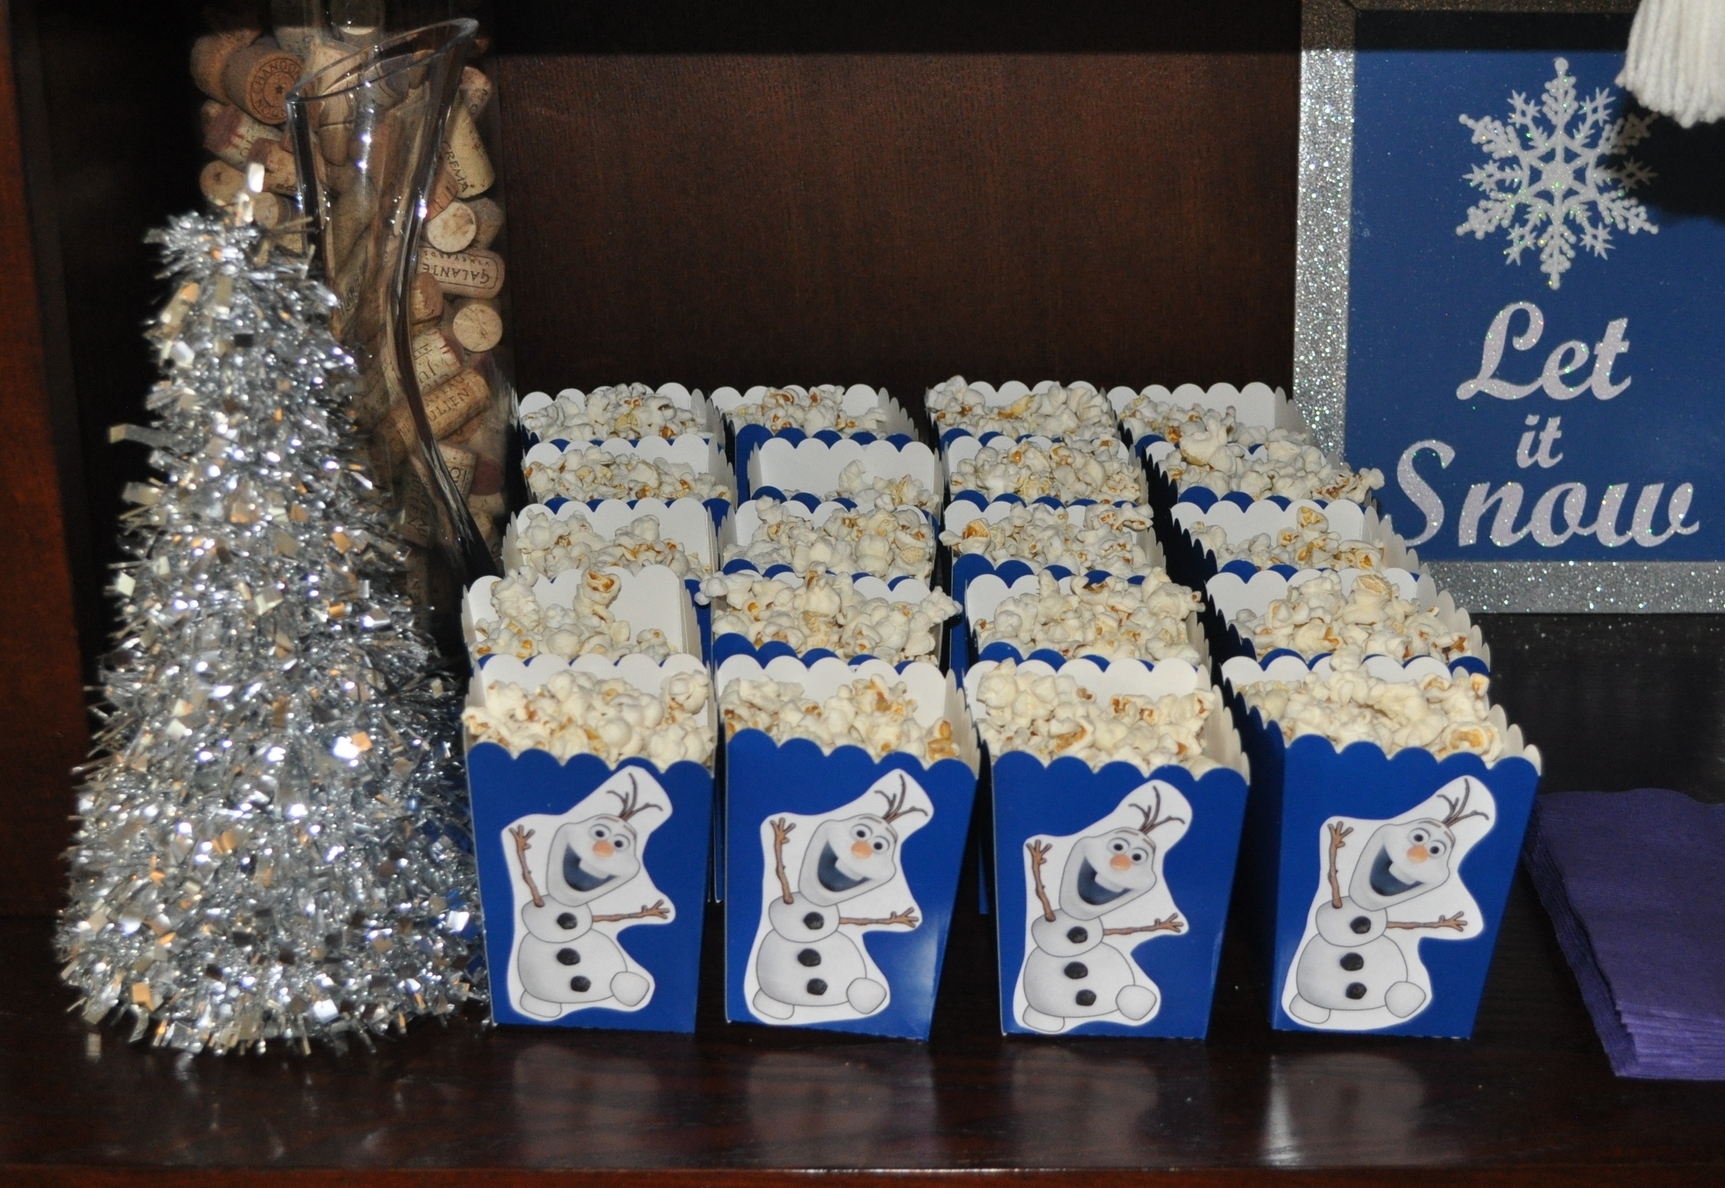 I printed out pictures of Olaf and glued them to blue boxes filled with popcorn, perfect parting snack!